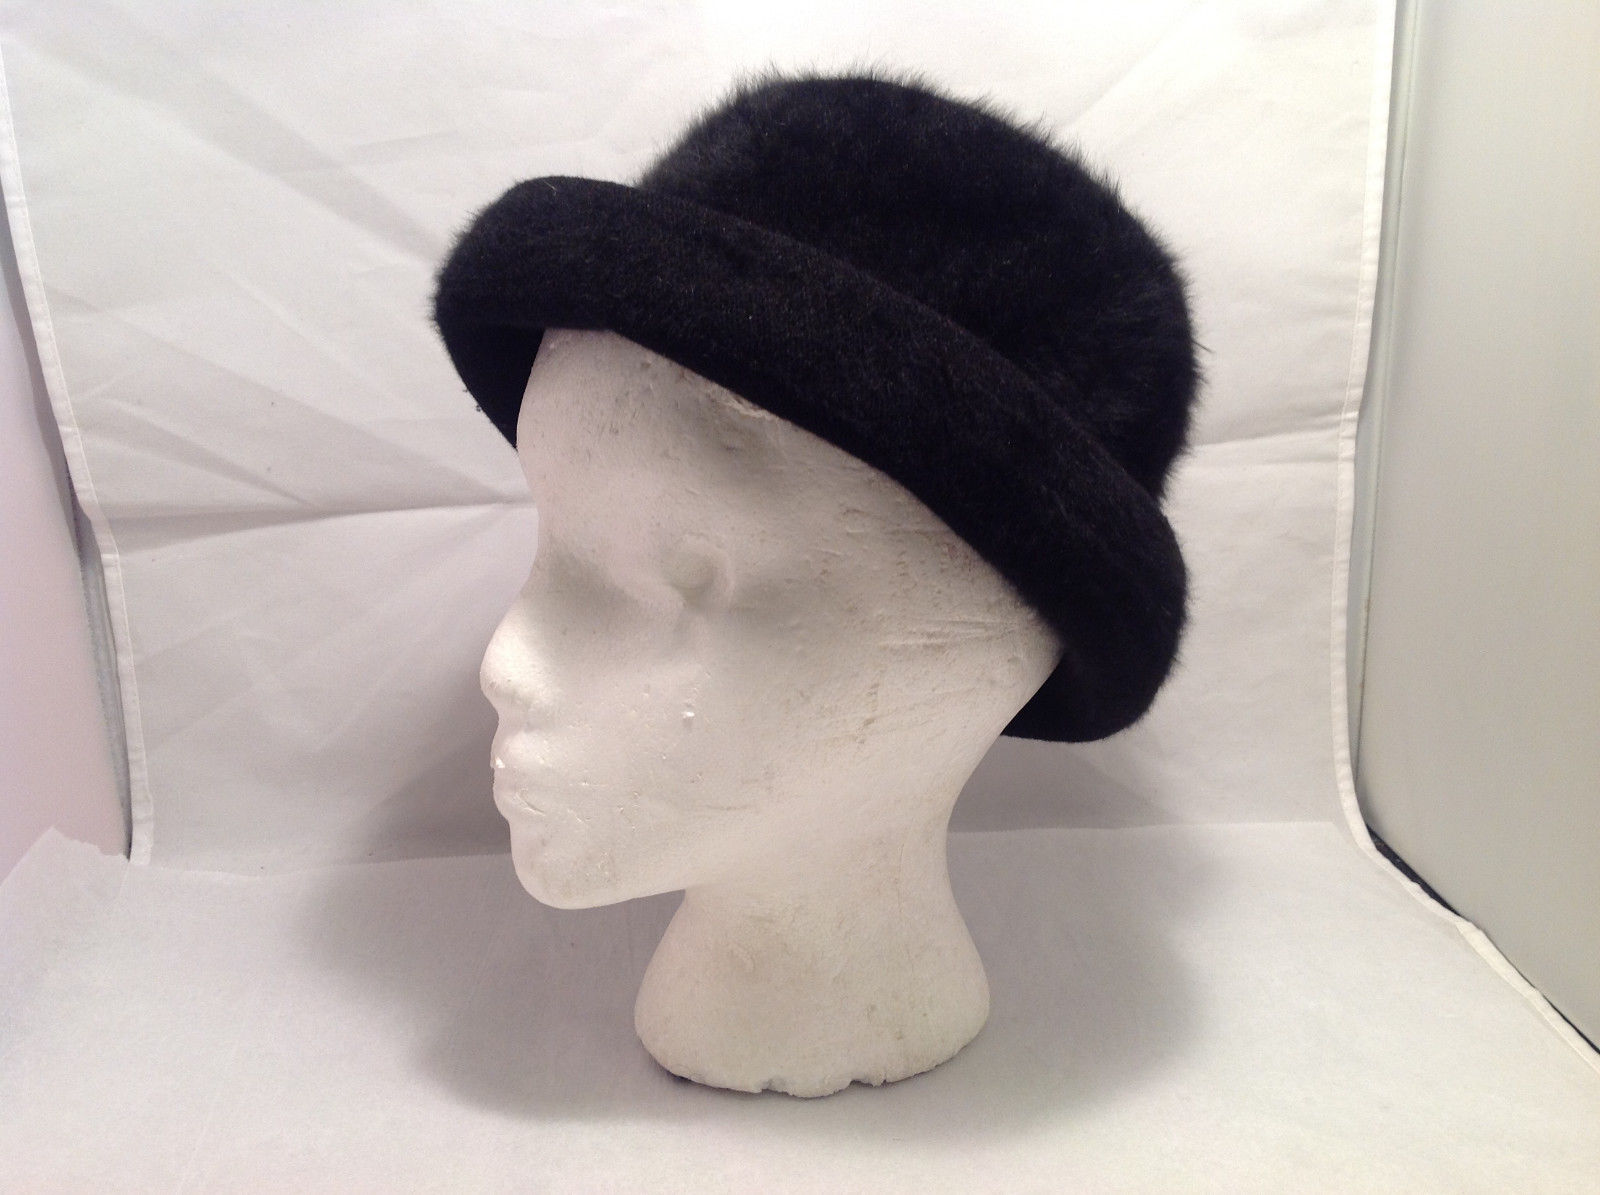 Kangol Women's Hat Bowler Style Black Furry Furred No Size Indicated Tags Absent